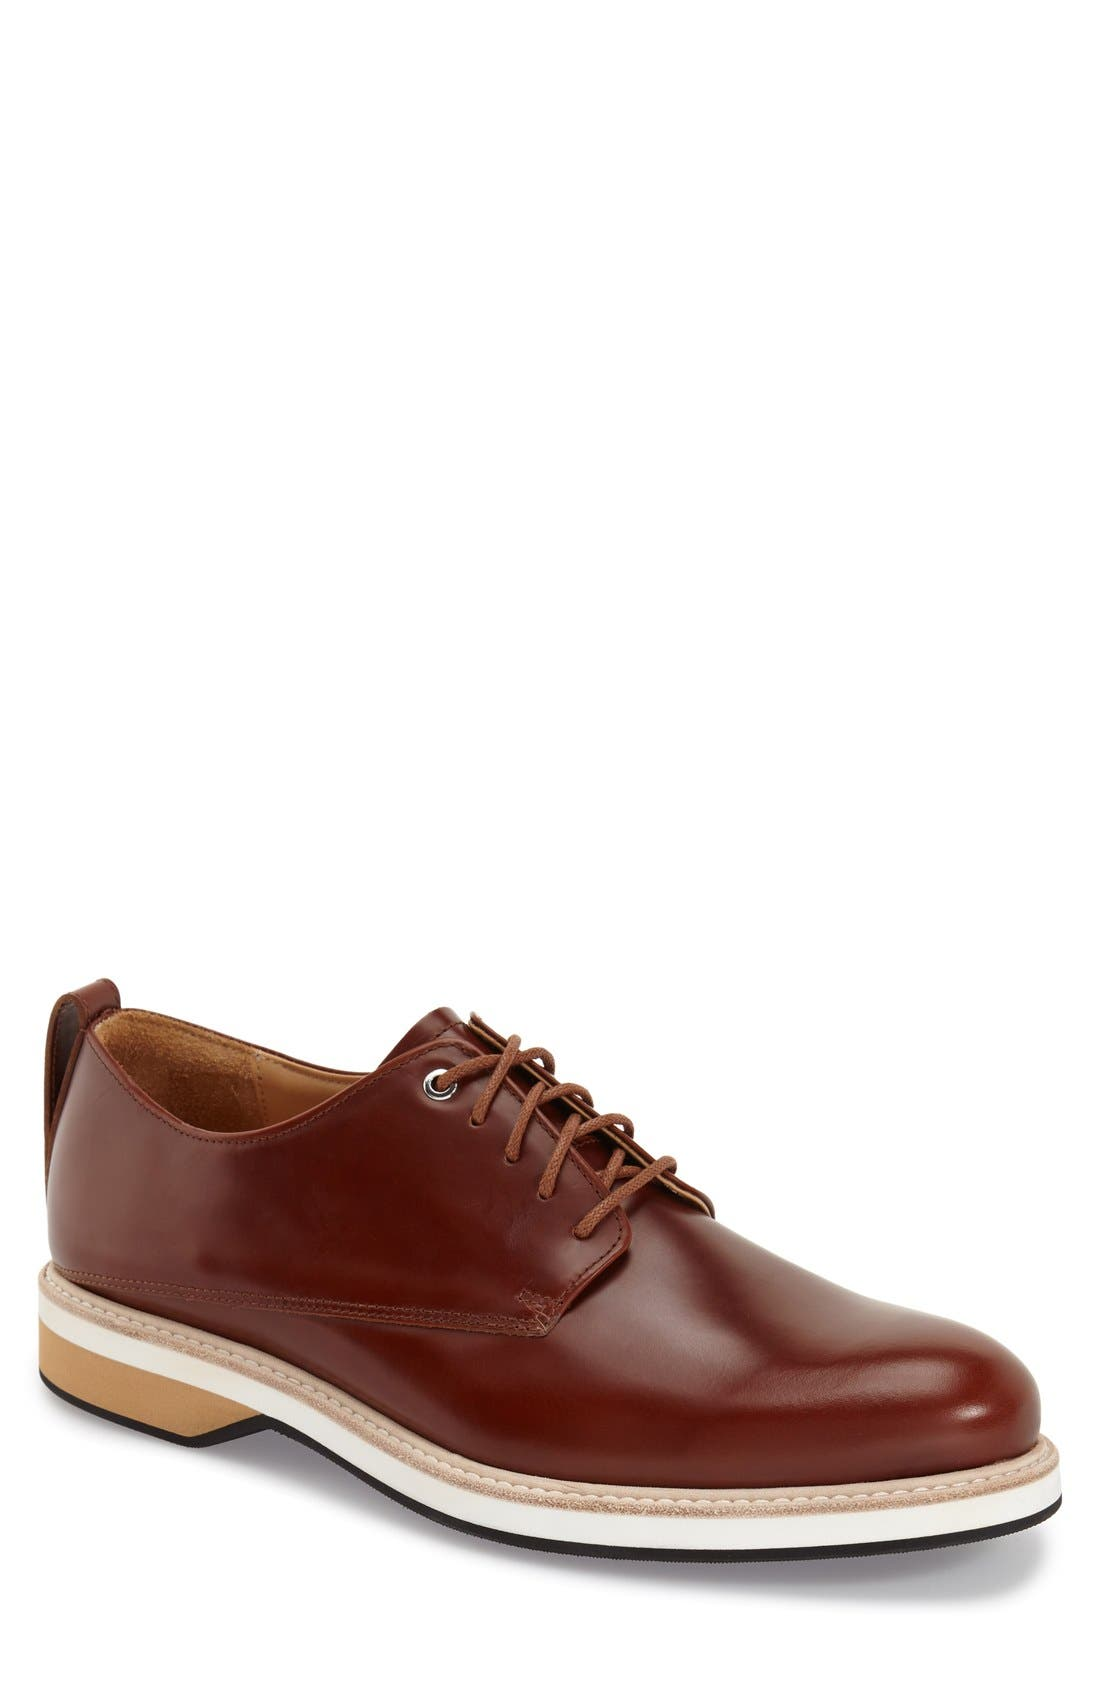 'Montoro' Derby,                             Main thumbnail 1, color,                             Cognac Leather